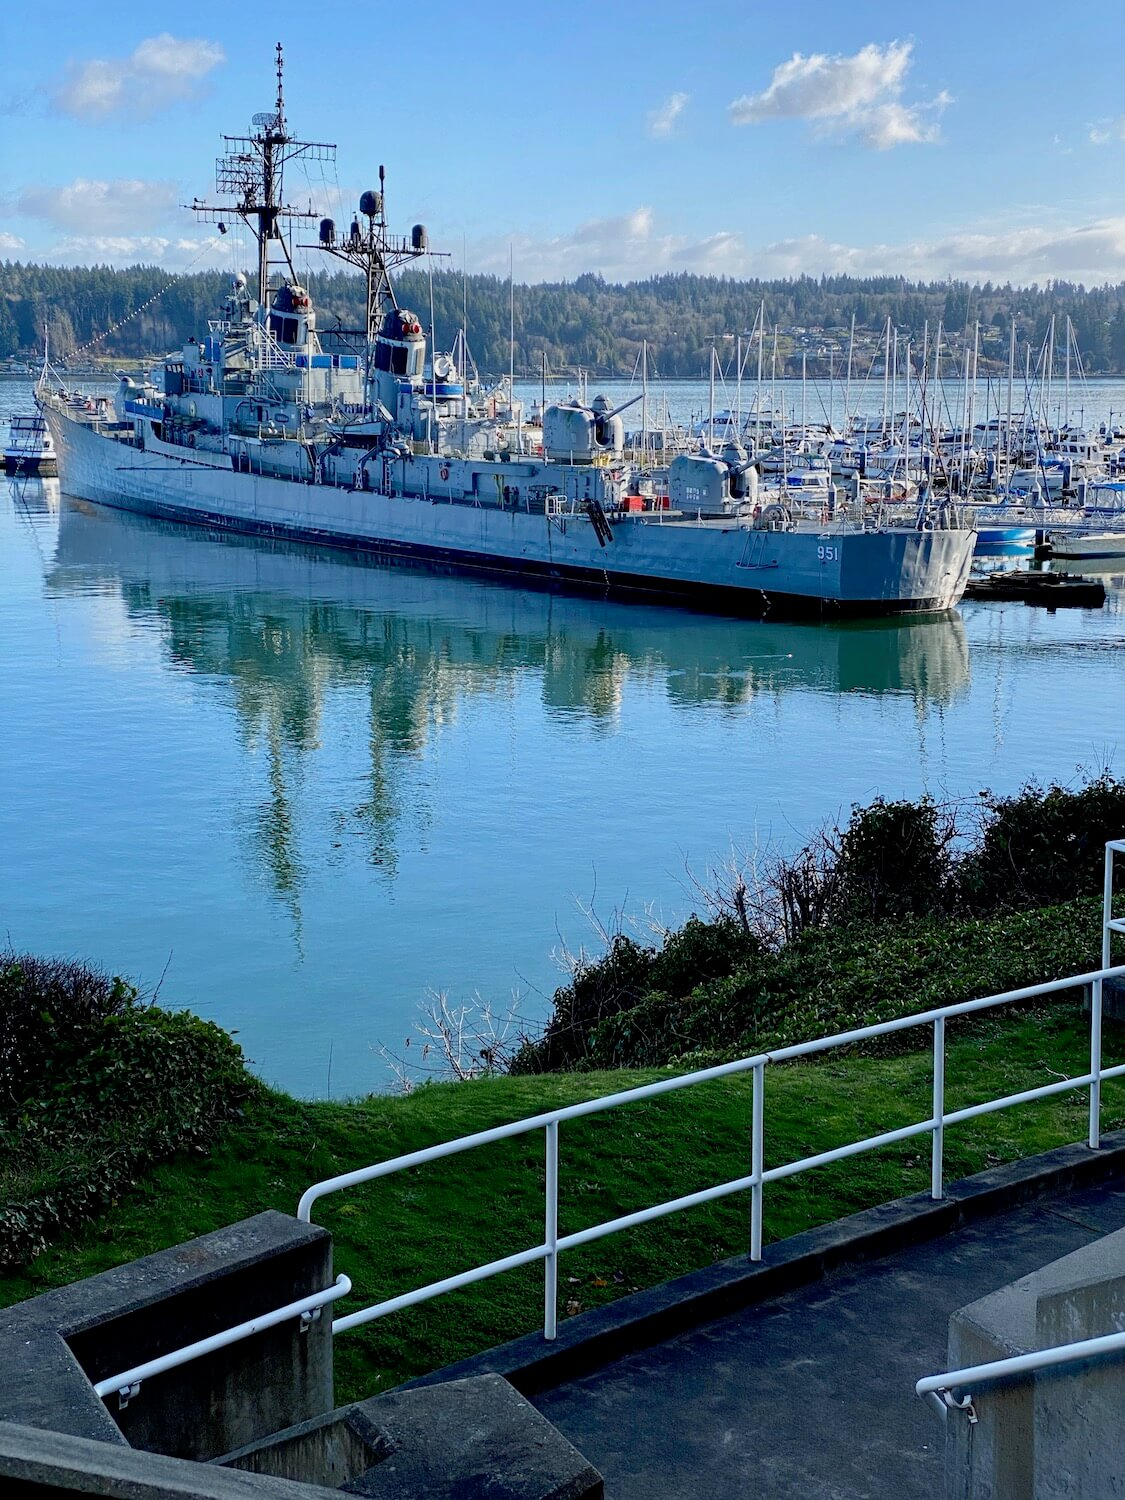 The warship USS Joy is normally open for tours but temporarily closed during COVID.  The ship is in the harbor of Bremerton and is a great site to visit on a day trip from Seattle.